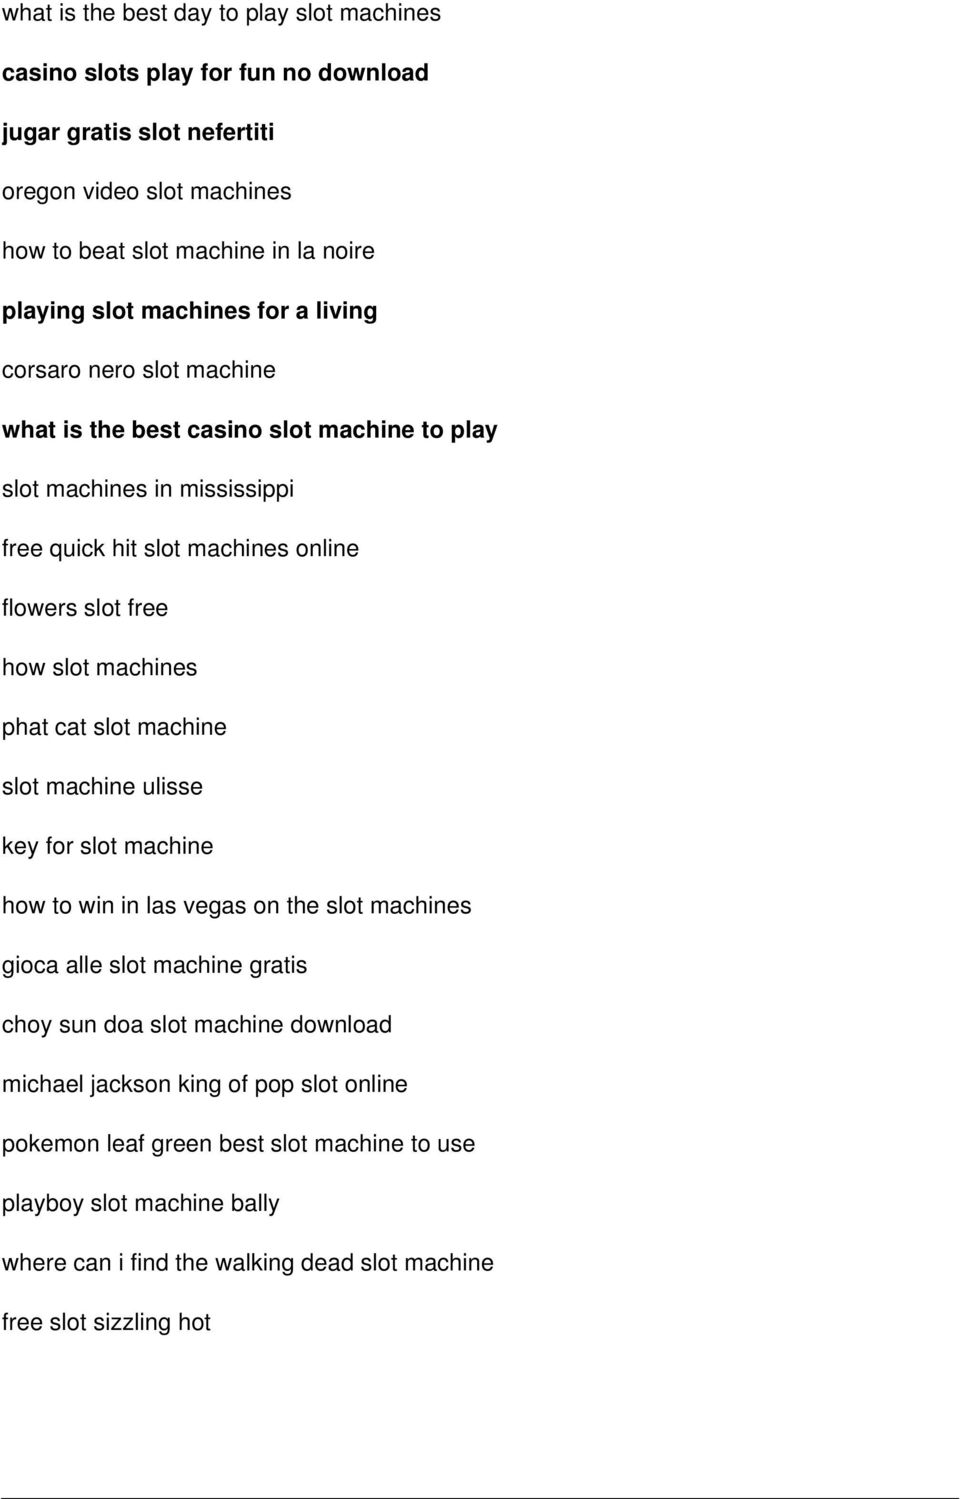 Where Can I Find The Walking Dead Slot Machine Pdf